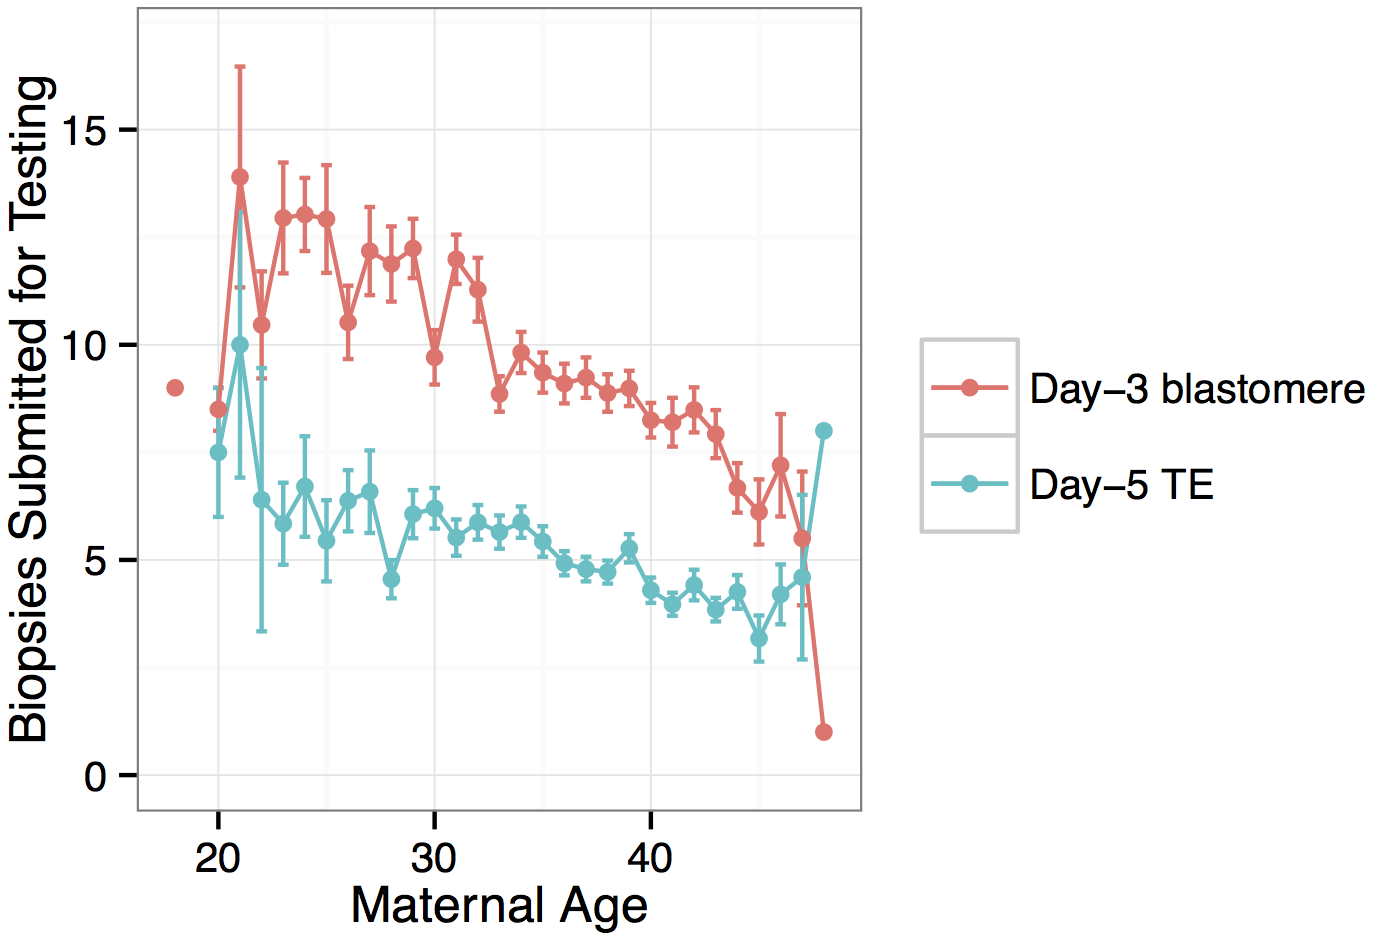 Number of embryo biopsies submitted for PGS declines with maternal age for both day-3 blastomere biopsies and day-5 TE biopsies.